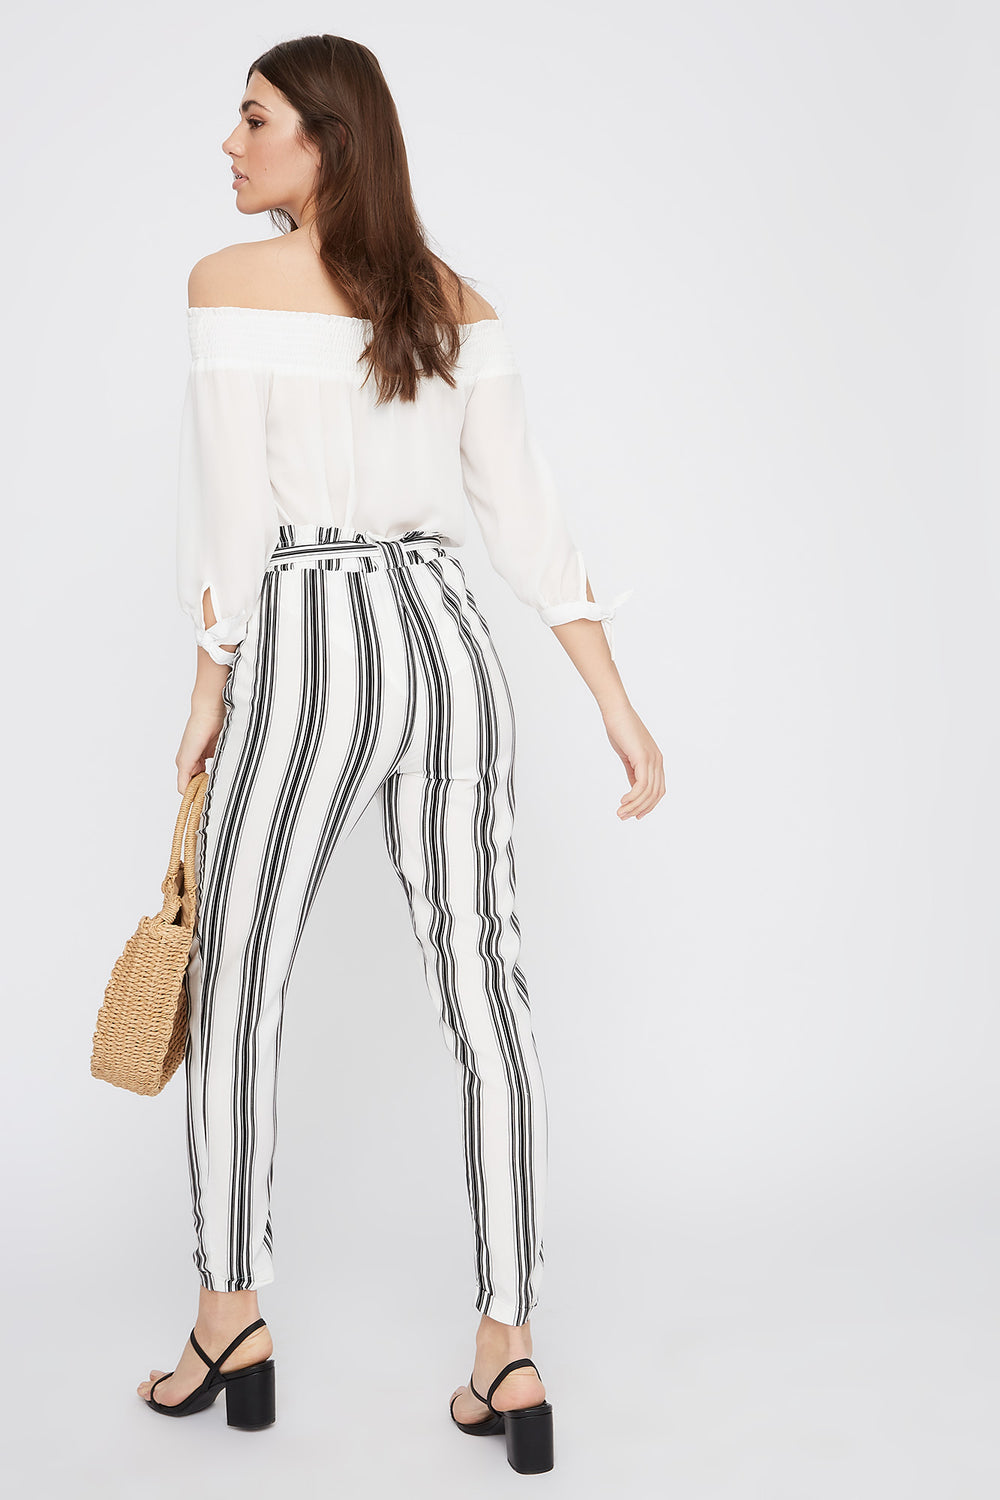 High-Rise Self-Tie Paperbag Cuffed Pant Black with White